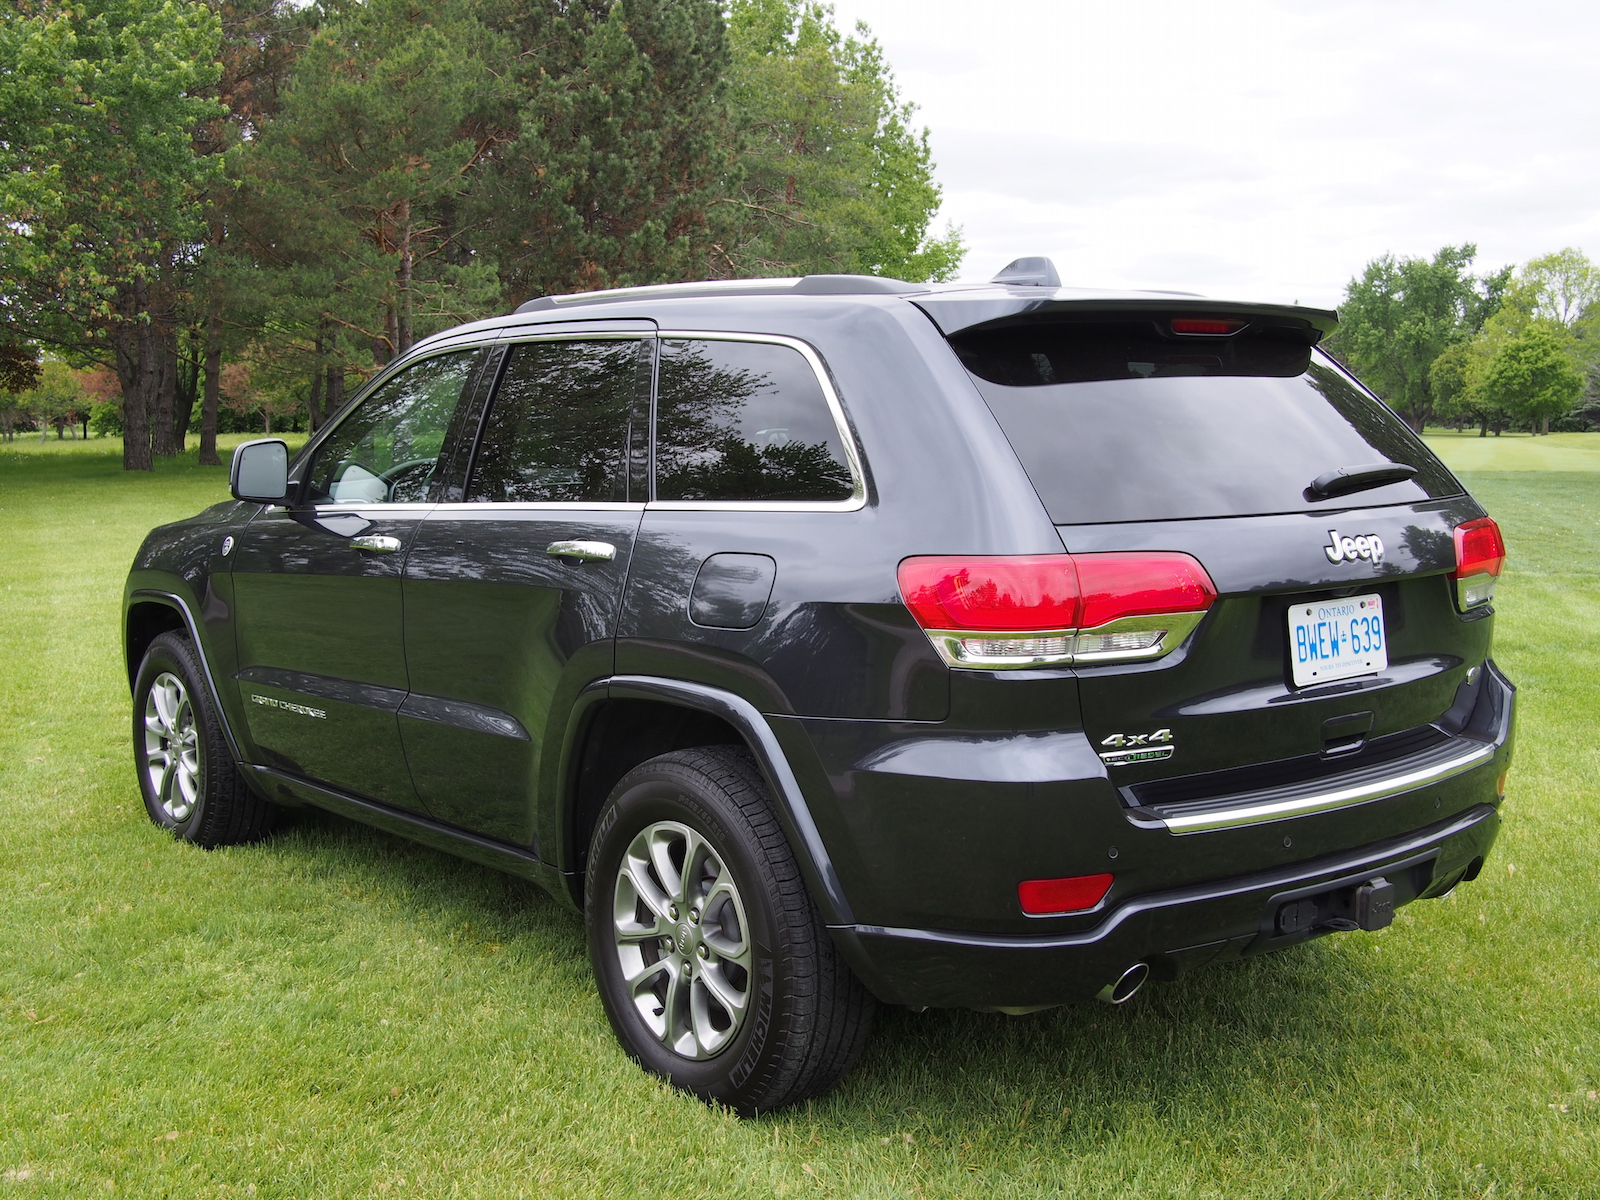 review 2015 jeep grand cherokee ecodiesel canadian auto review. Black Bedroom Furniture Sets. Home Design Ideas